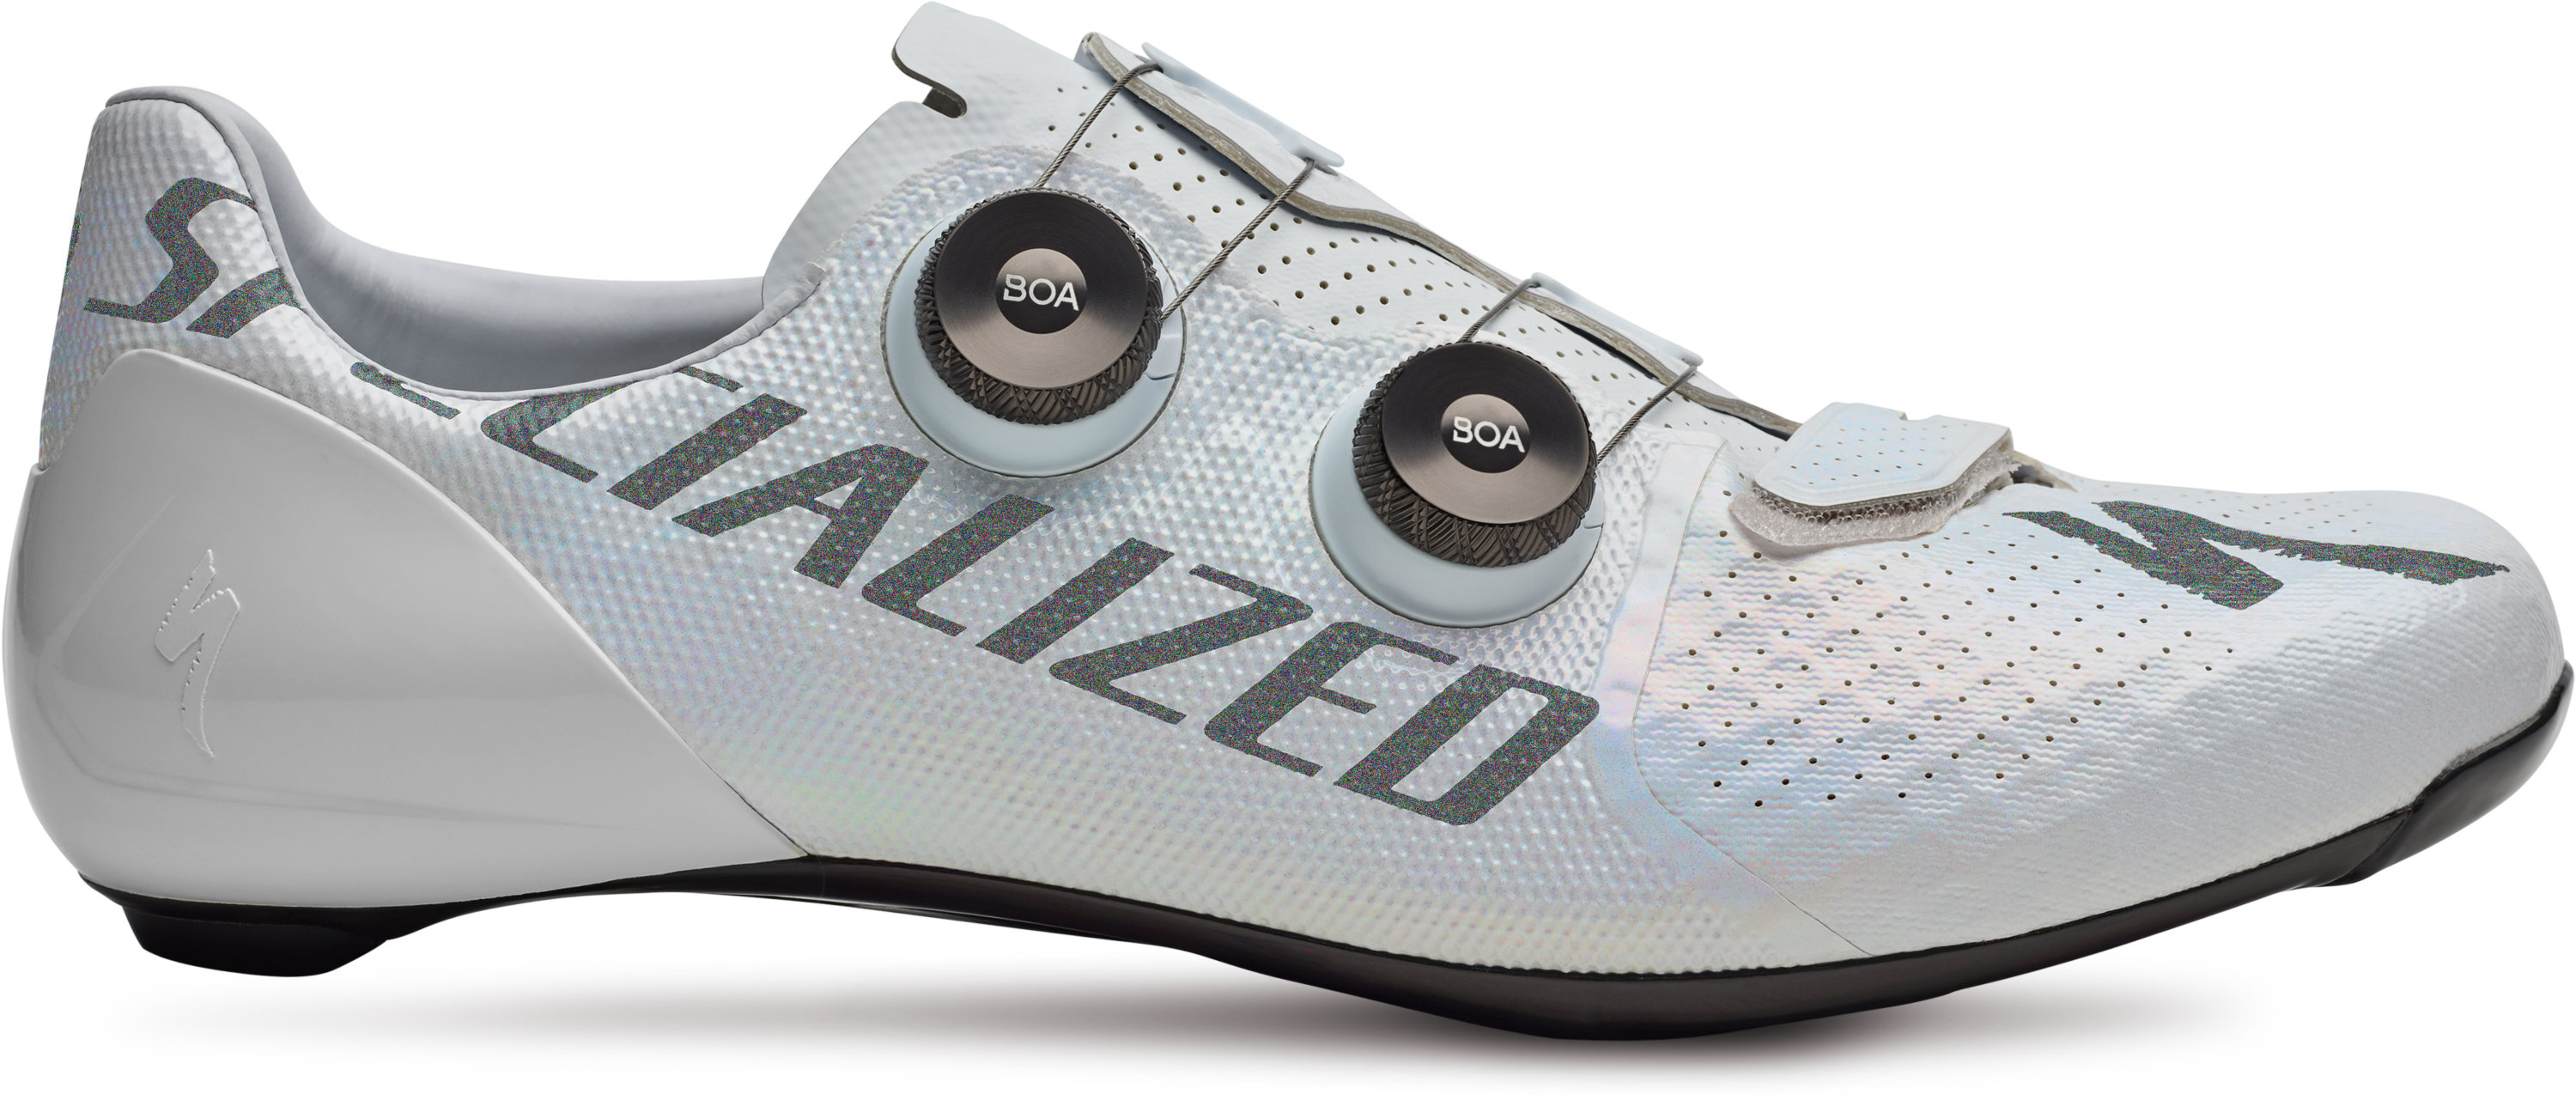 7cb6585a70853 S-Works 7 Road Shoes – Sagan Collection LTD